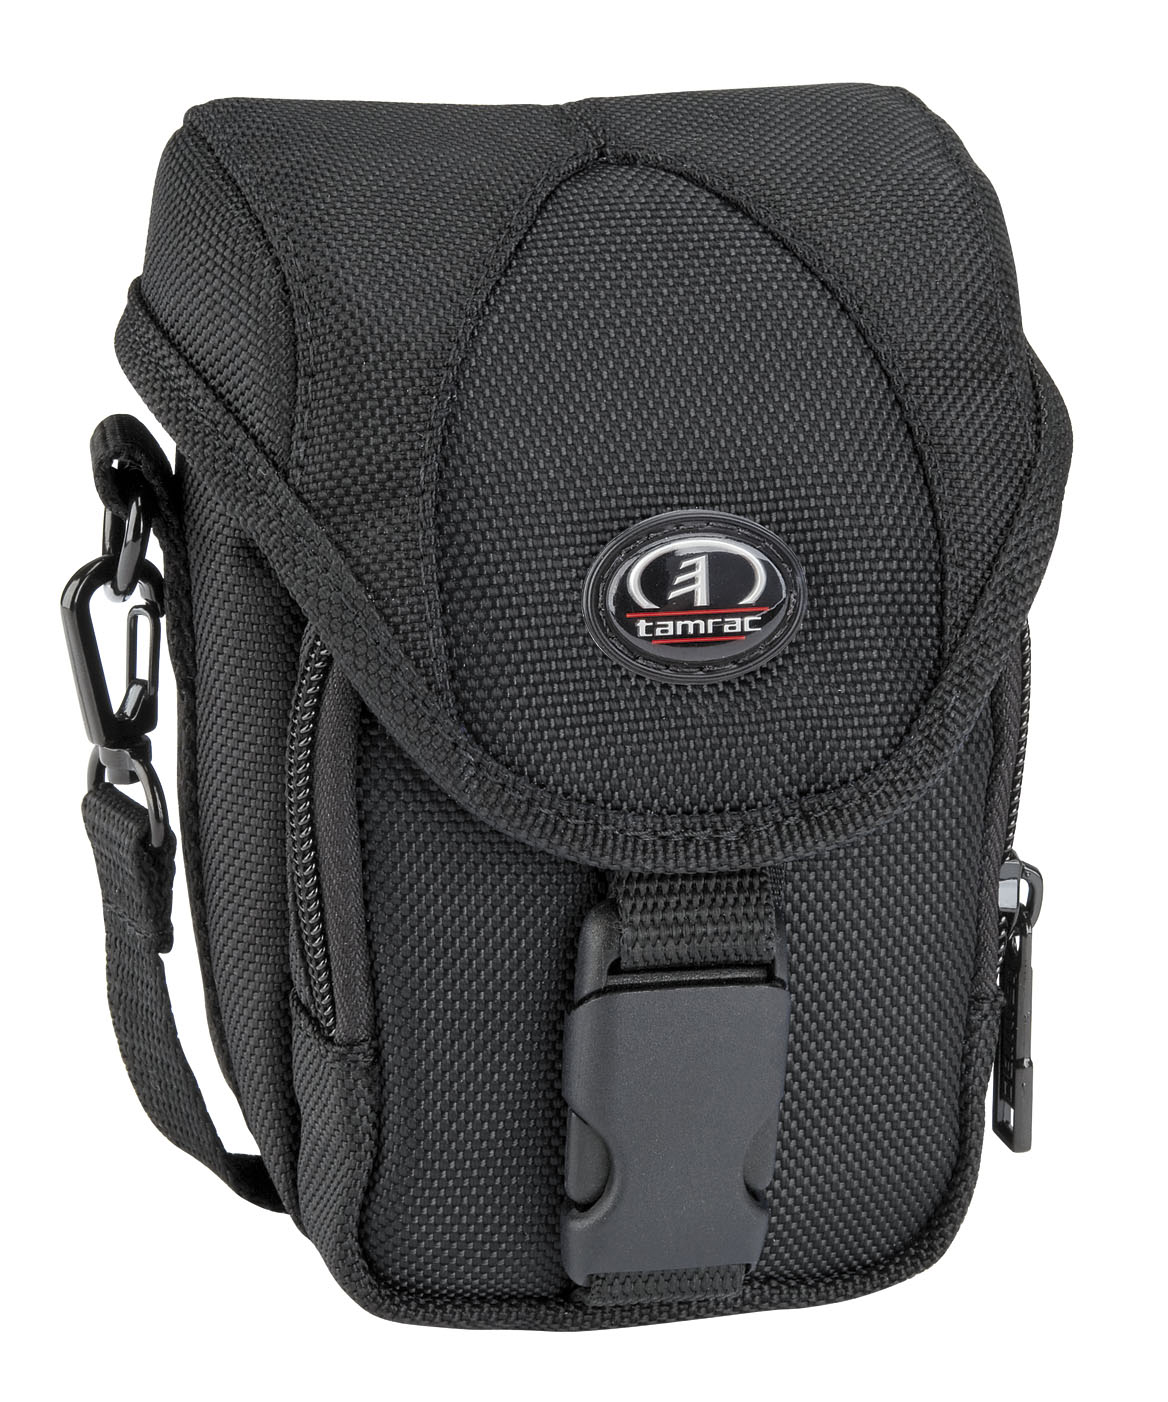 5692 Digital 2 Compact Camera Bag